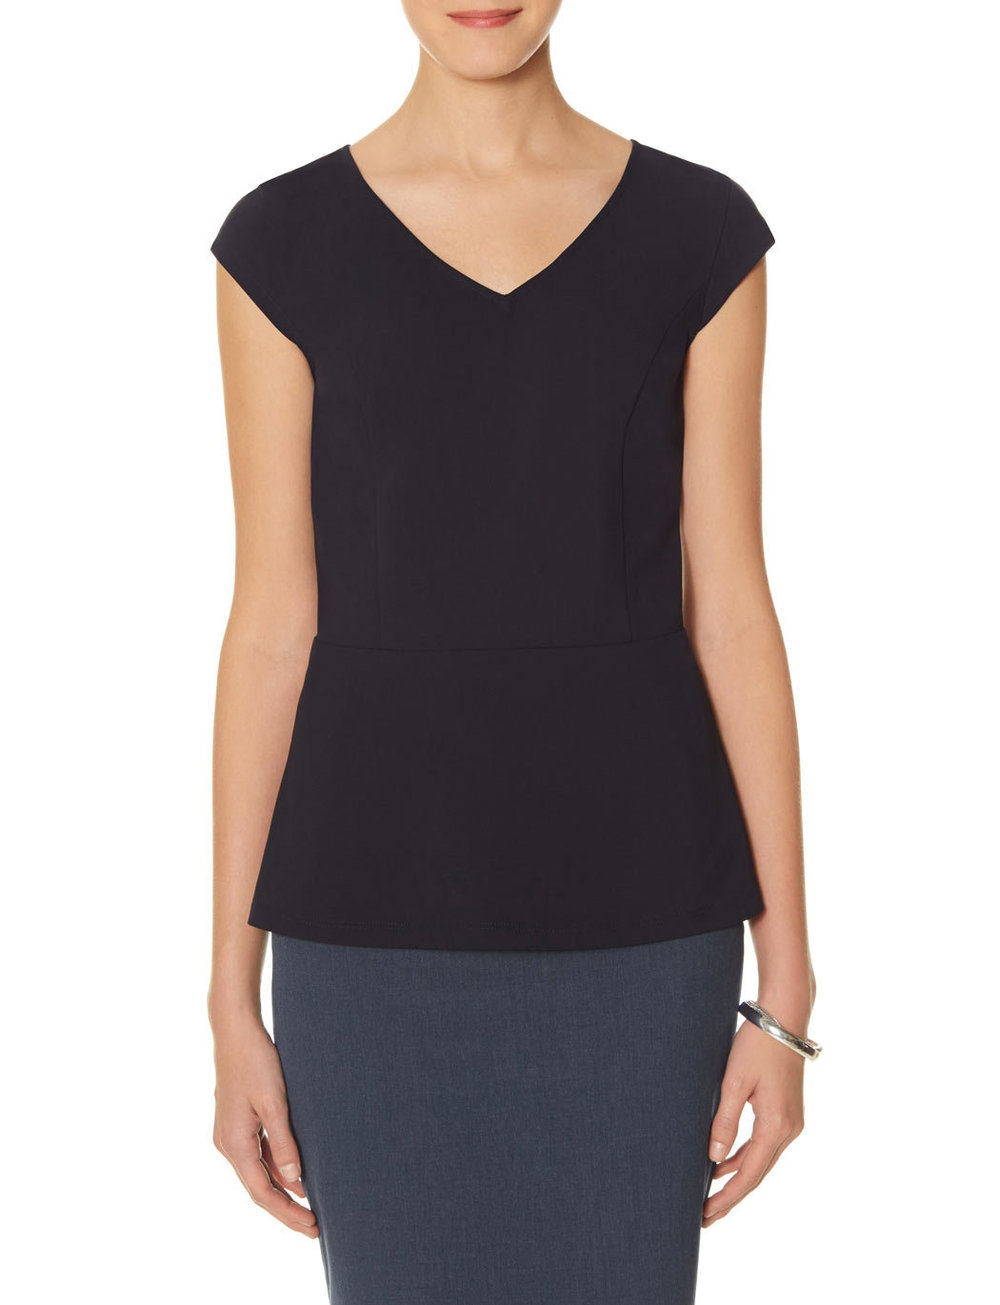 V Neck Peplum Top. Available in navy, black, light grey, mauve. the Limited. $59.95. Buy one get one 1/2 off.